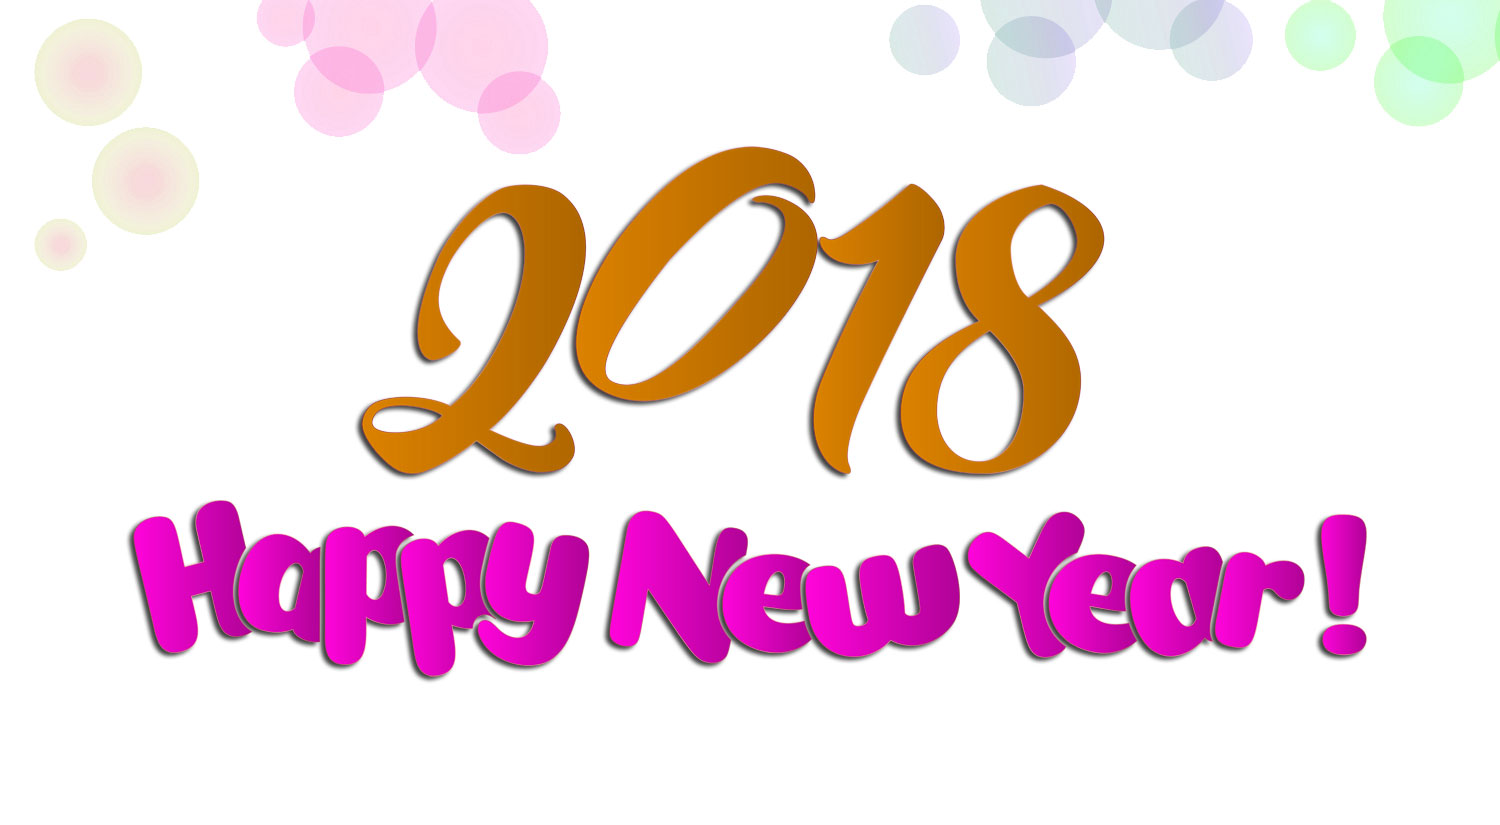 [500+] Happy New Year 2018 HD Wallpapers, Images, Pictures